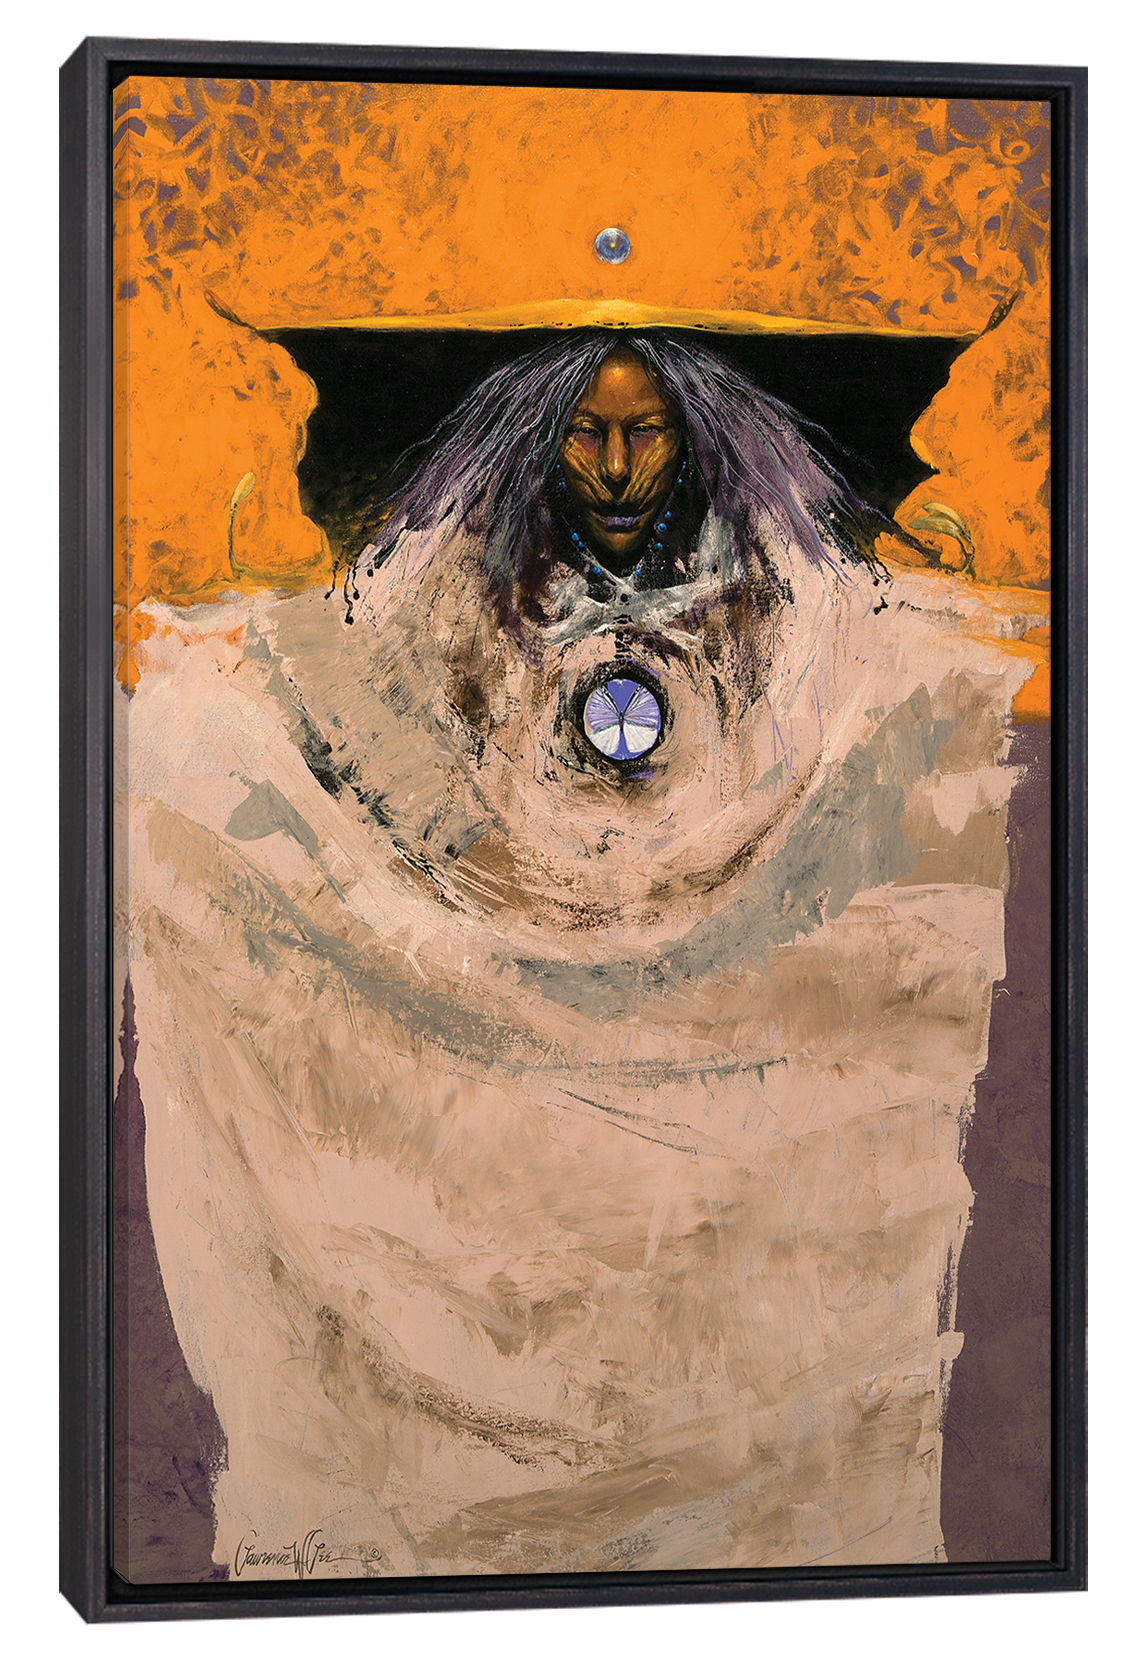 a shaman with wiry gray and purple hair wearing a large tan garment with a gold and black headpiece